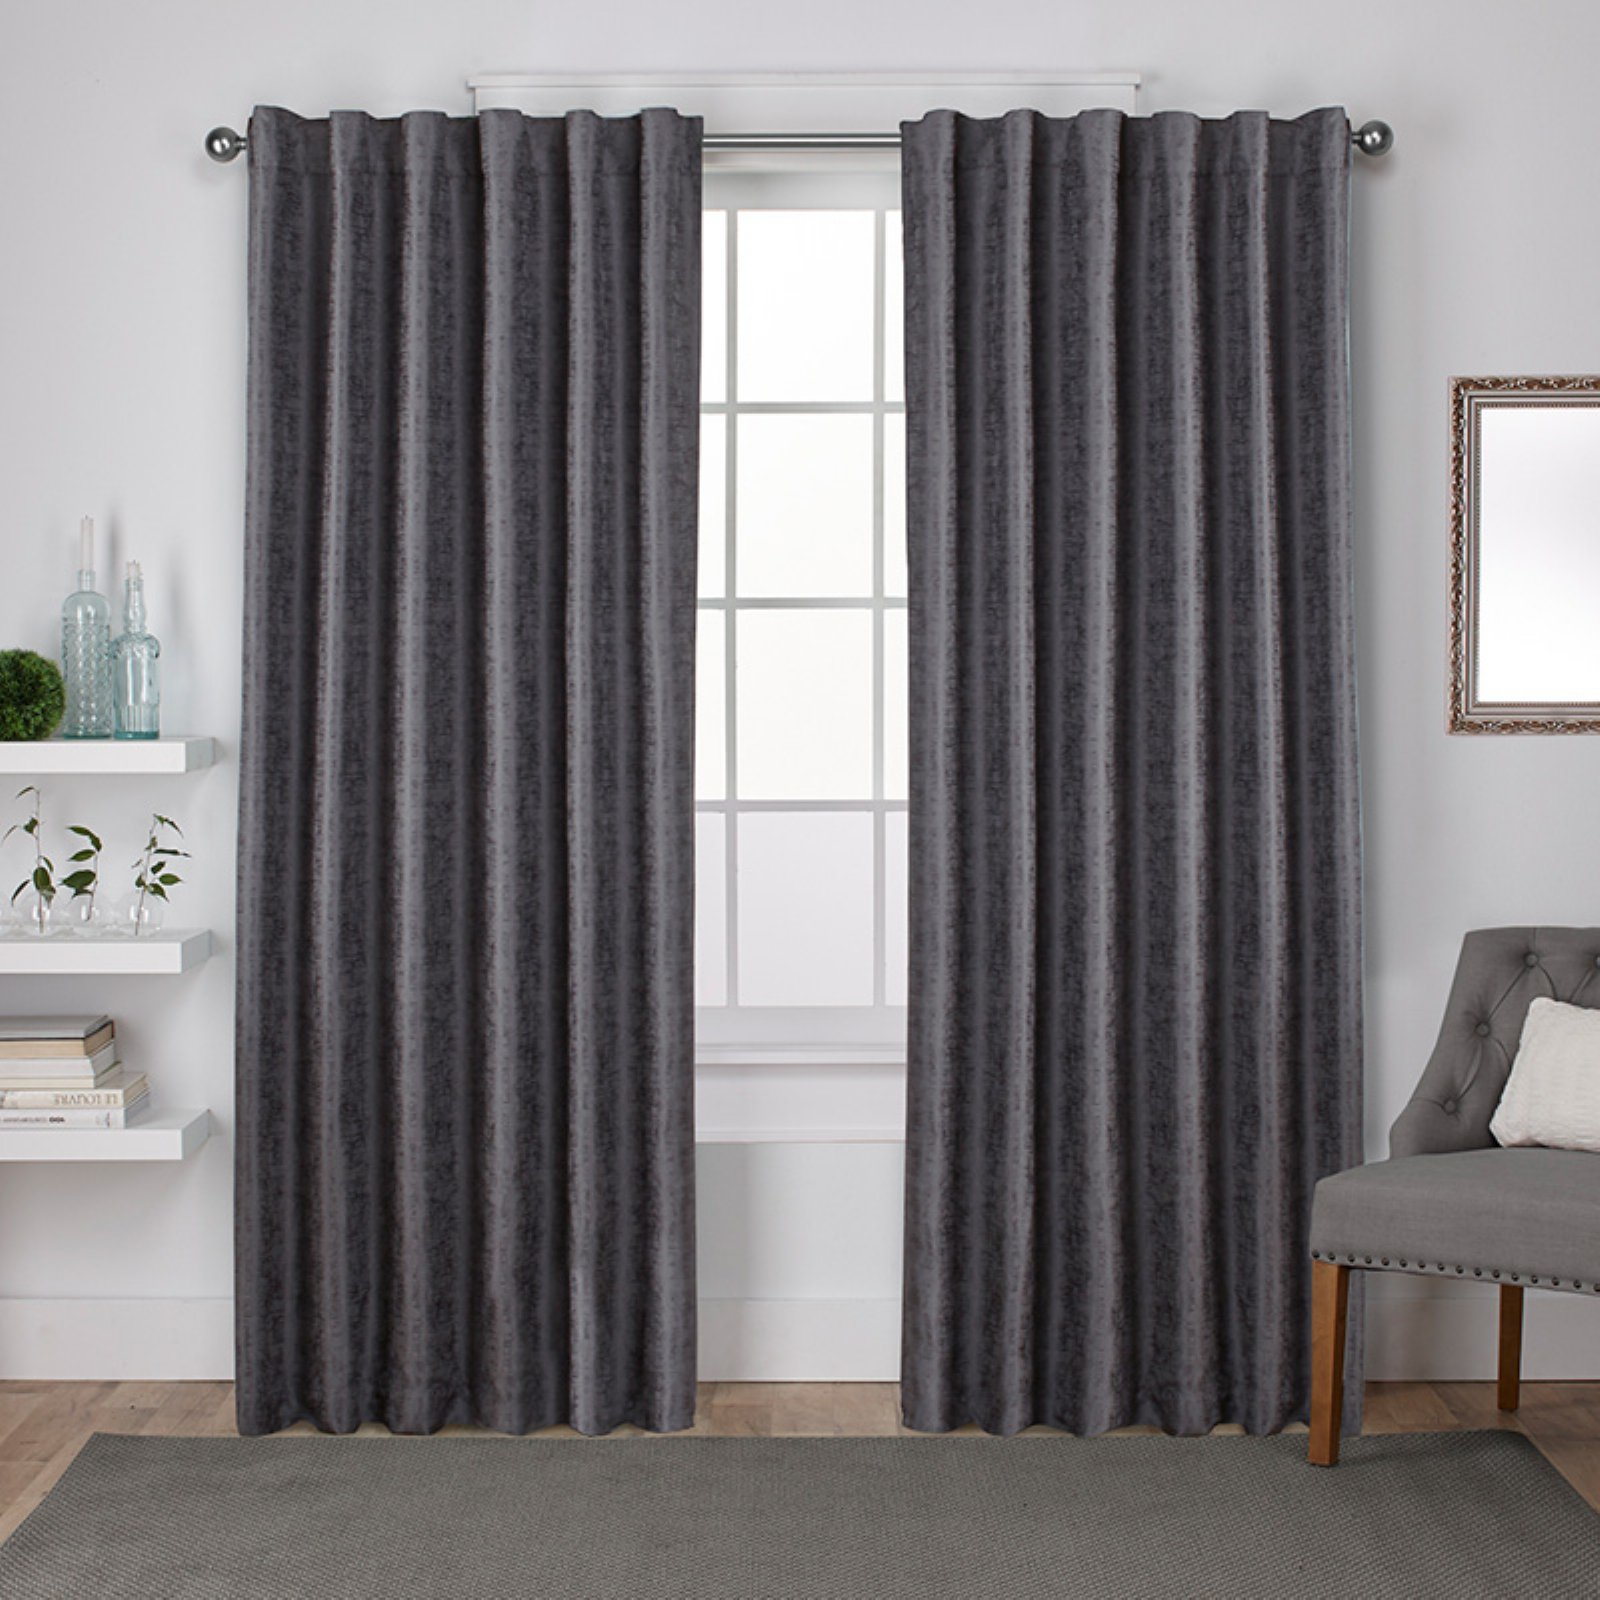 Exclusive Home Zeus Solid Textured Jacquard Blackout Window Curtain Panel Pair with Back Tab Top